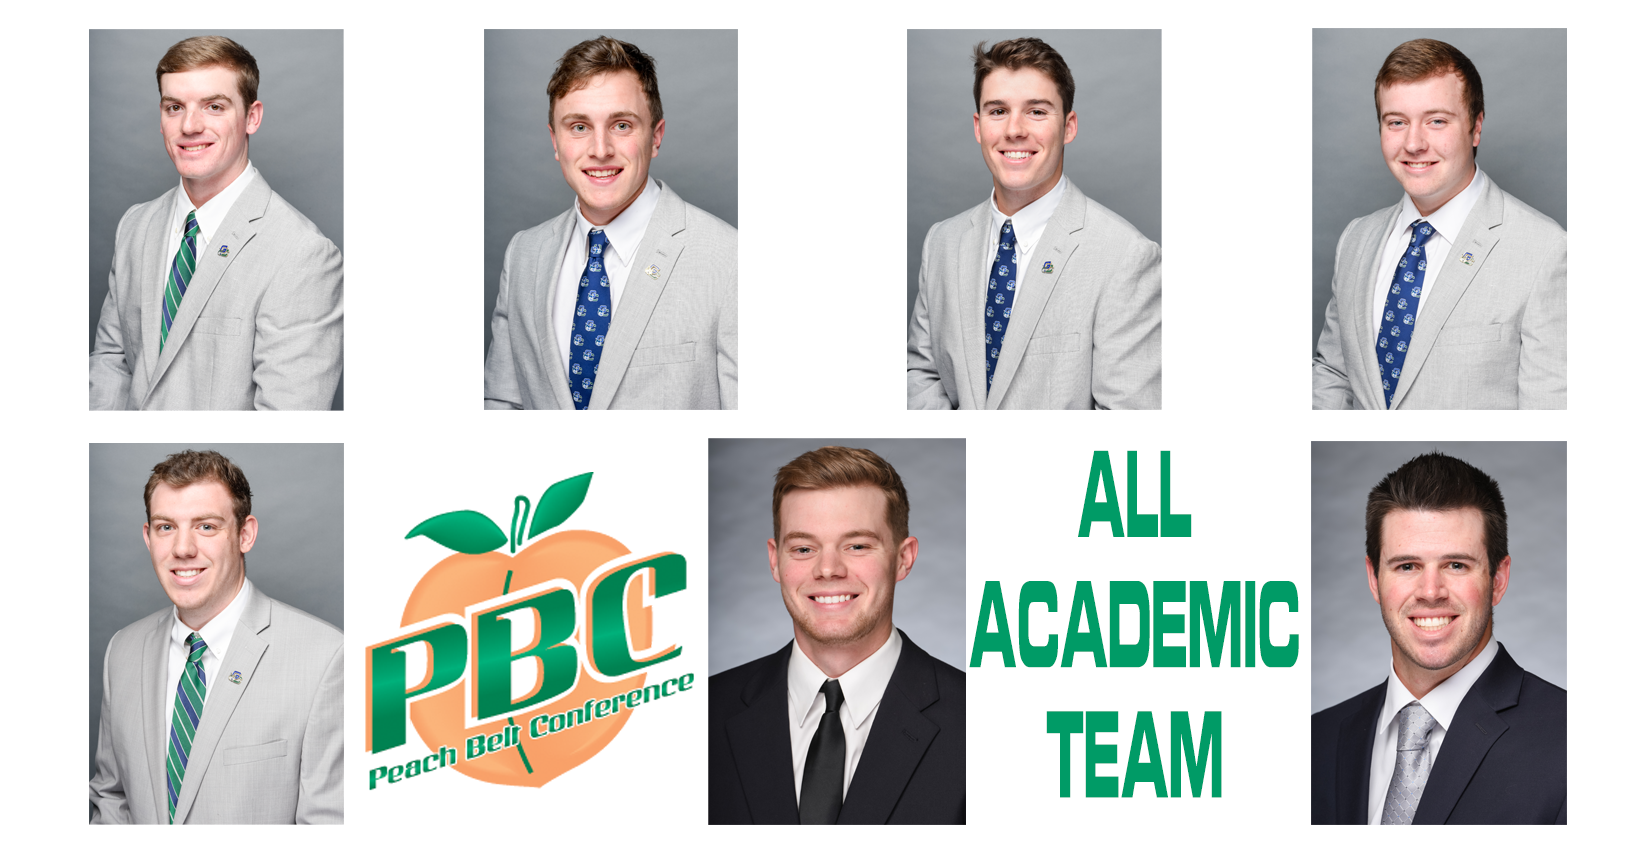 Bobcat Baseball All-Academic Team Members